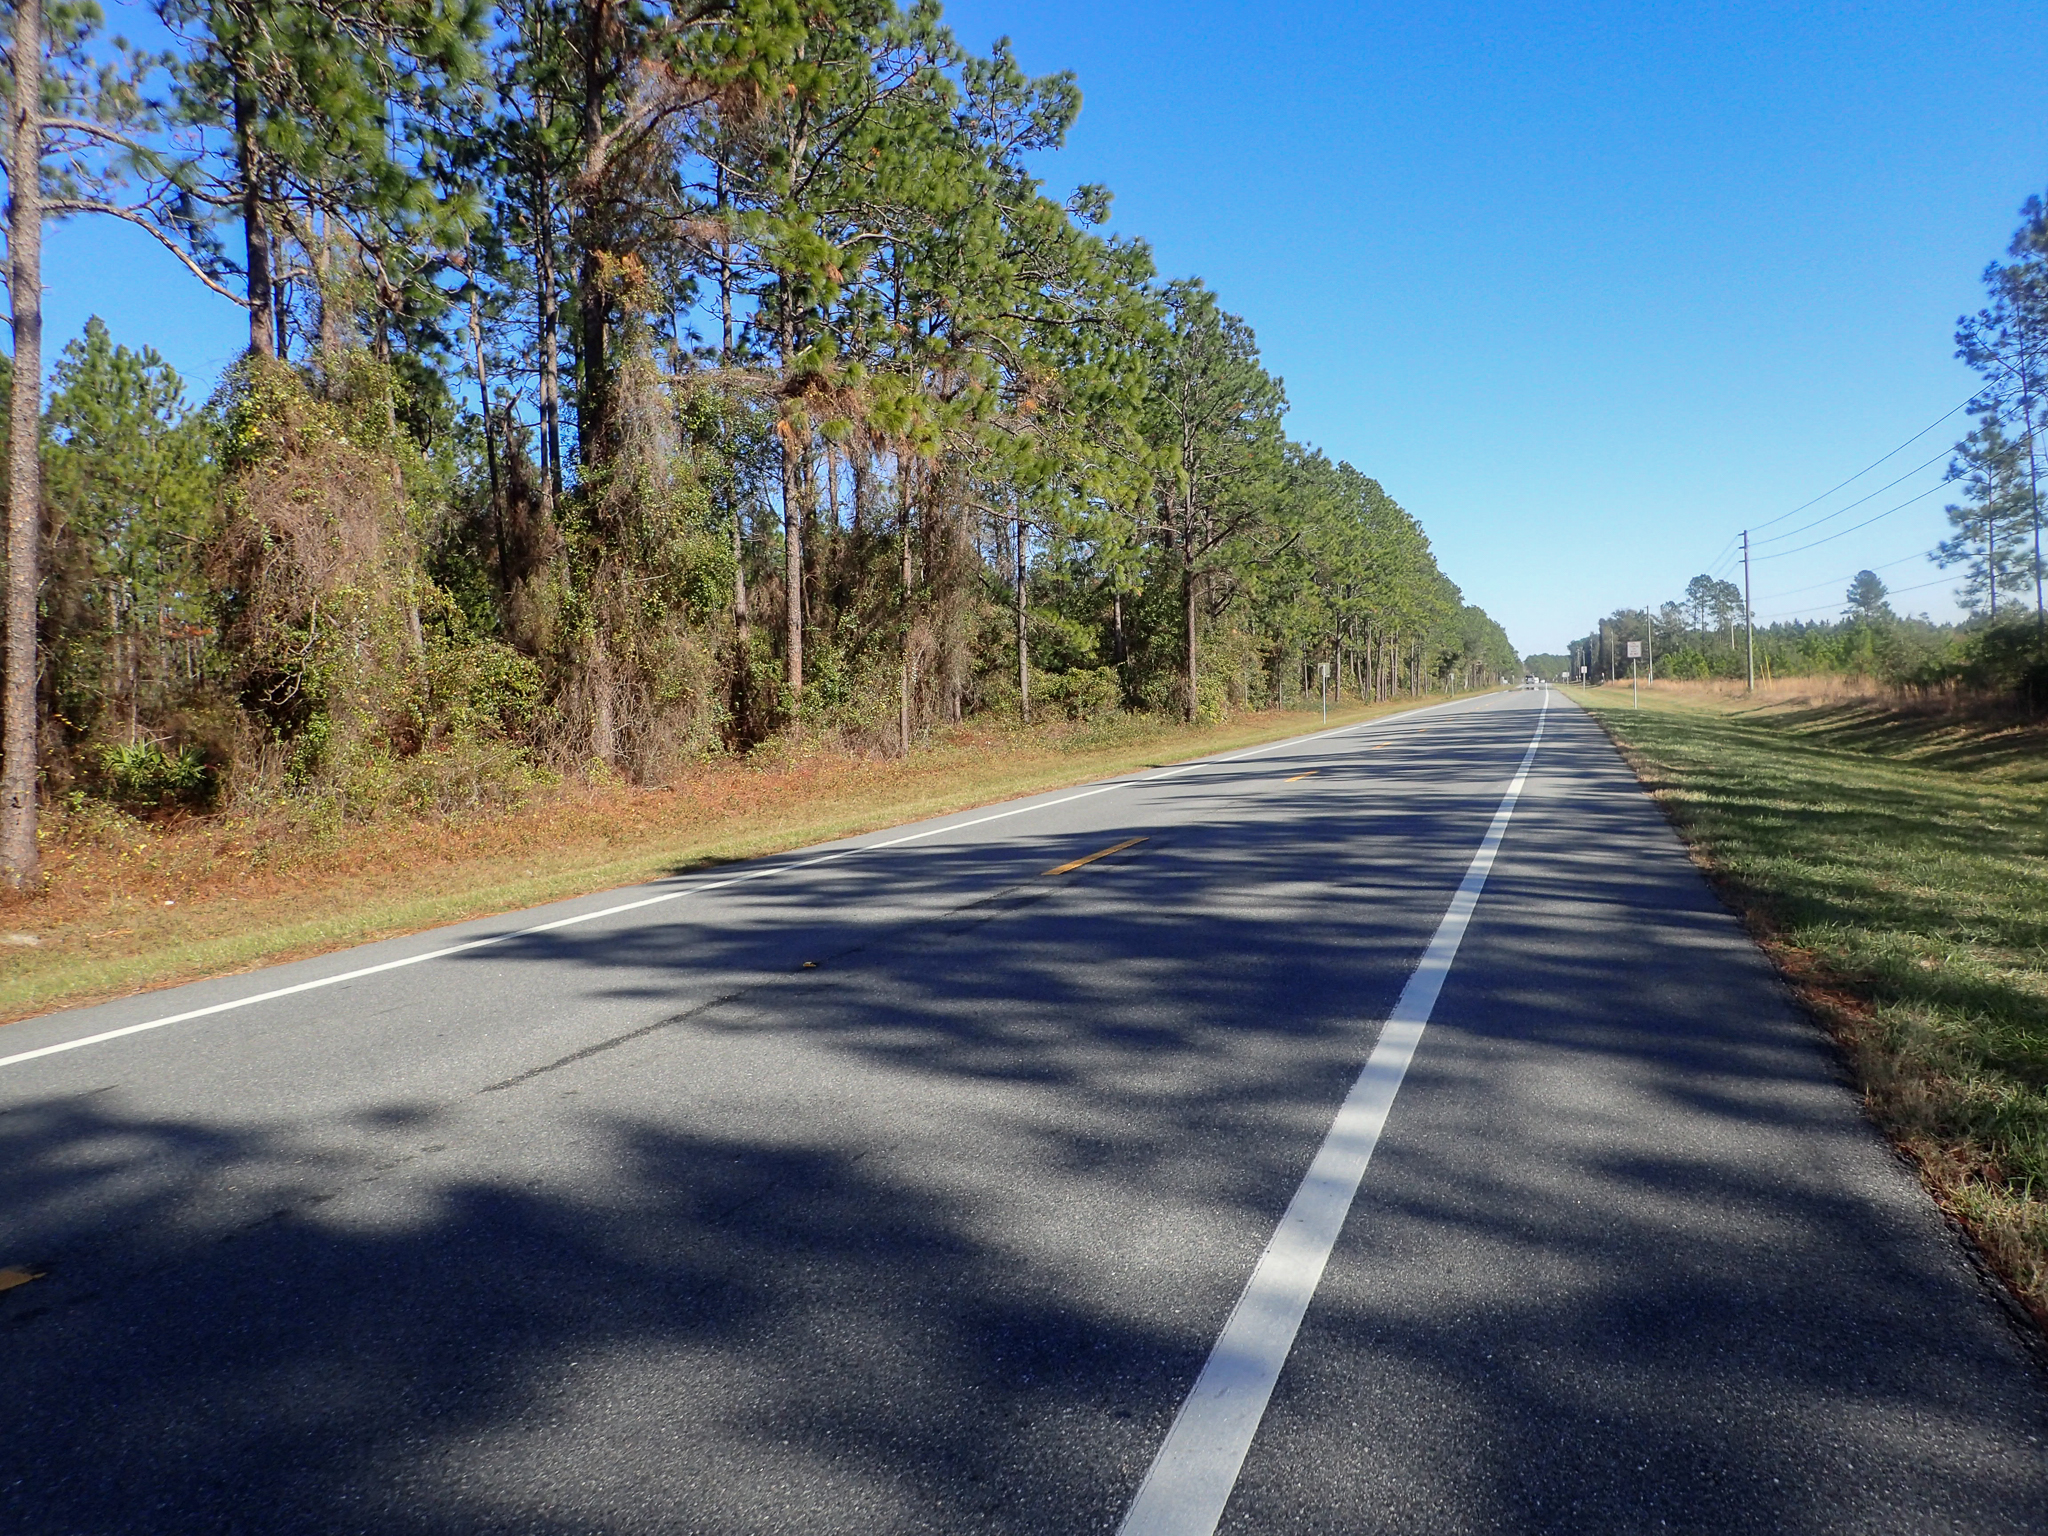 bright and sunny on the road in Florida